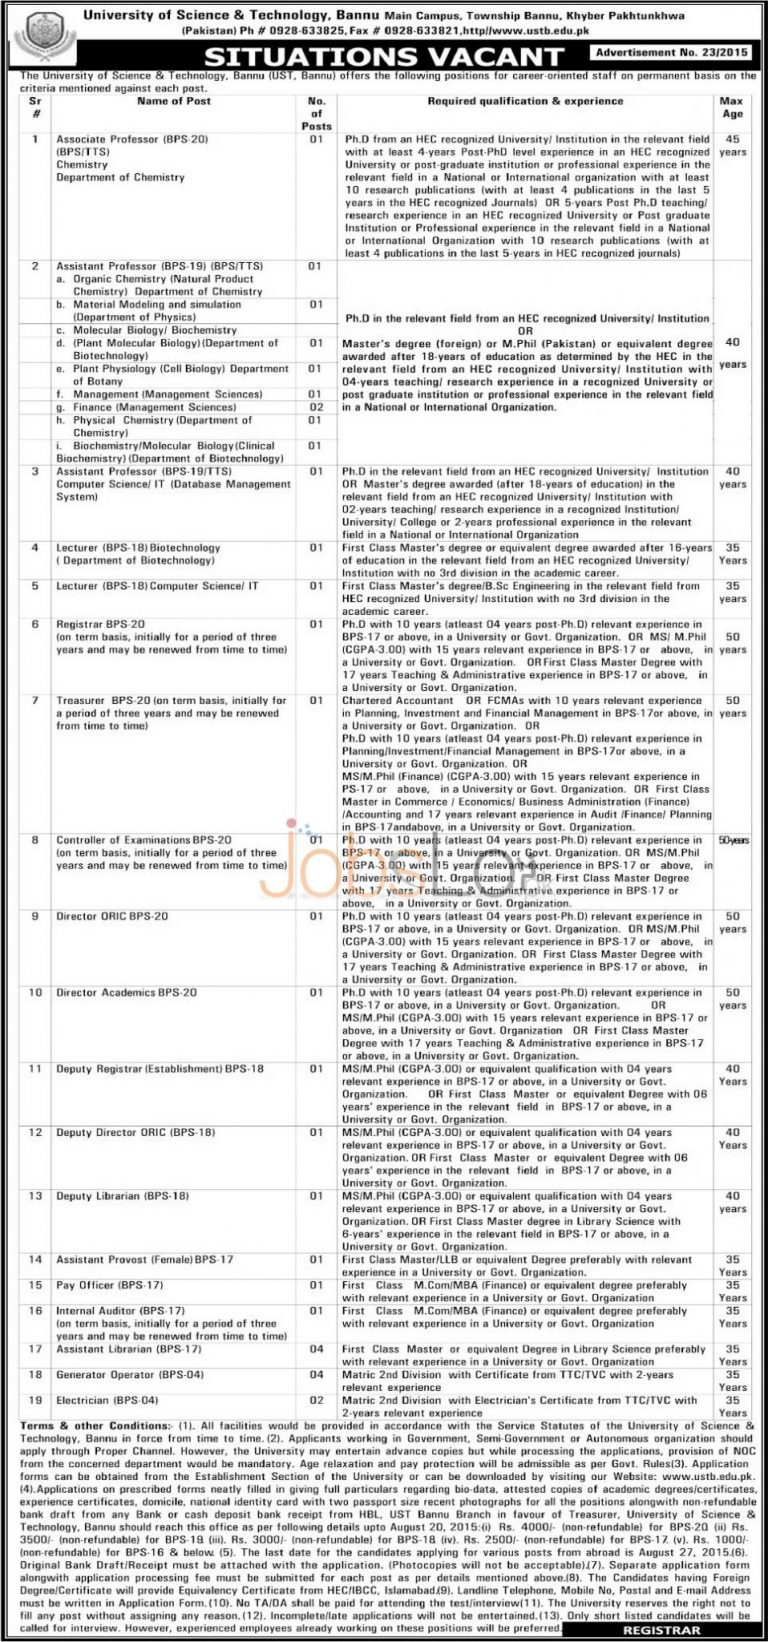 University of Science & Technology UST Bannu Jobs 2015 Application Form